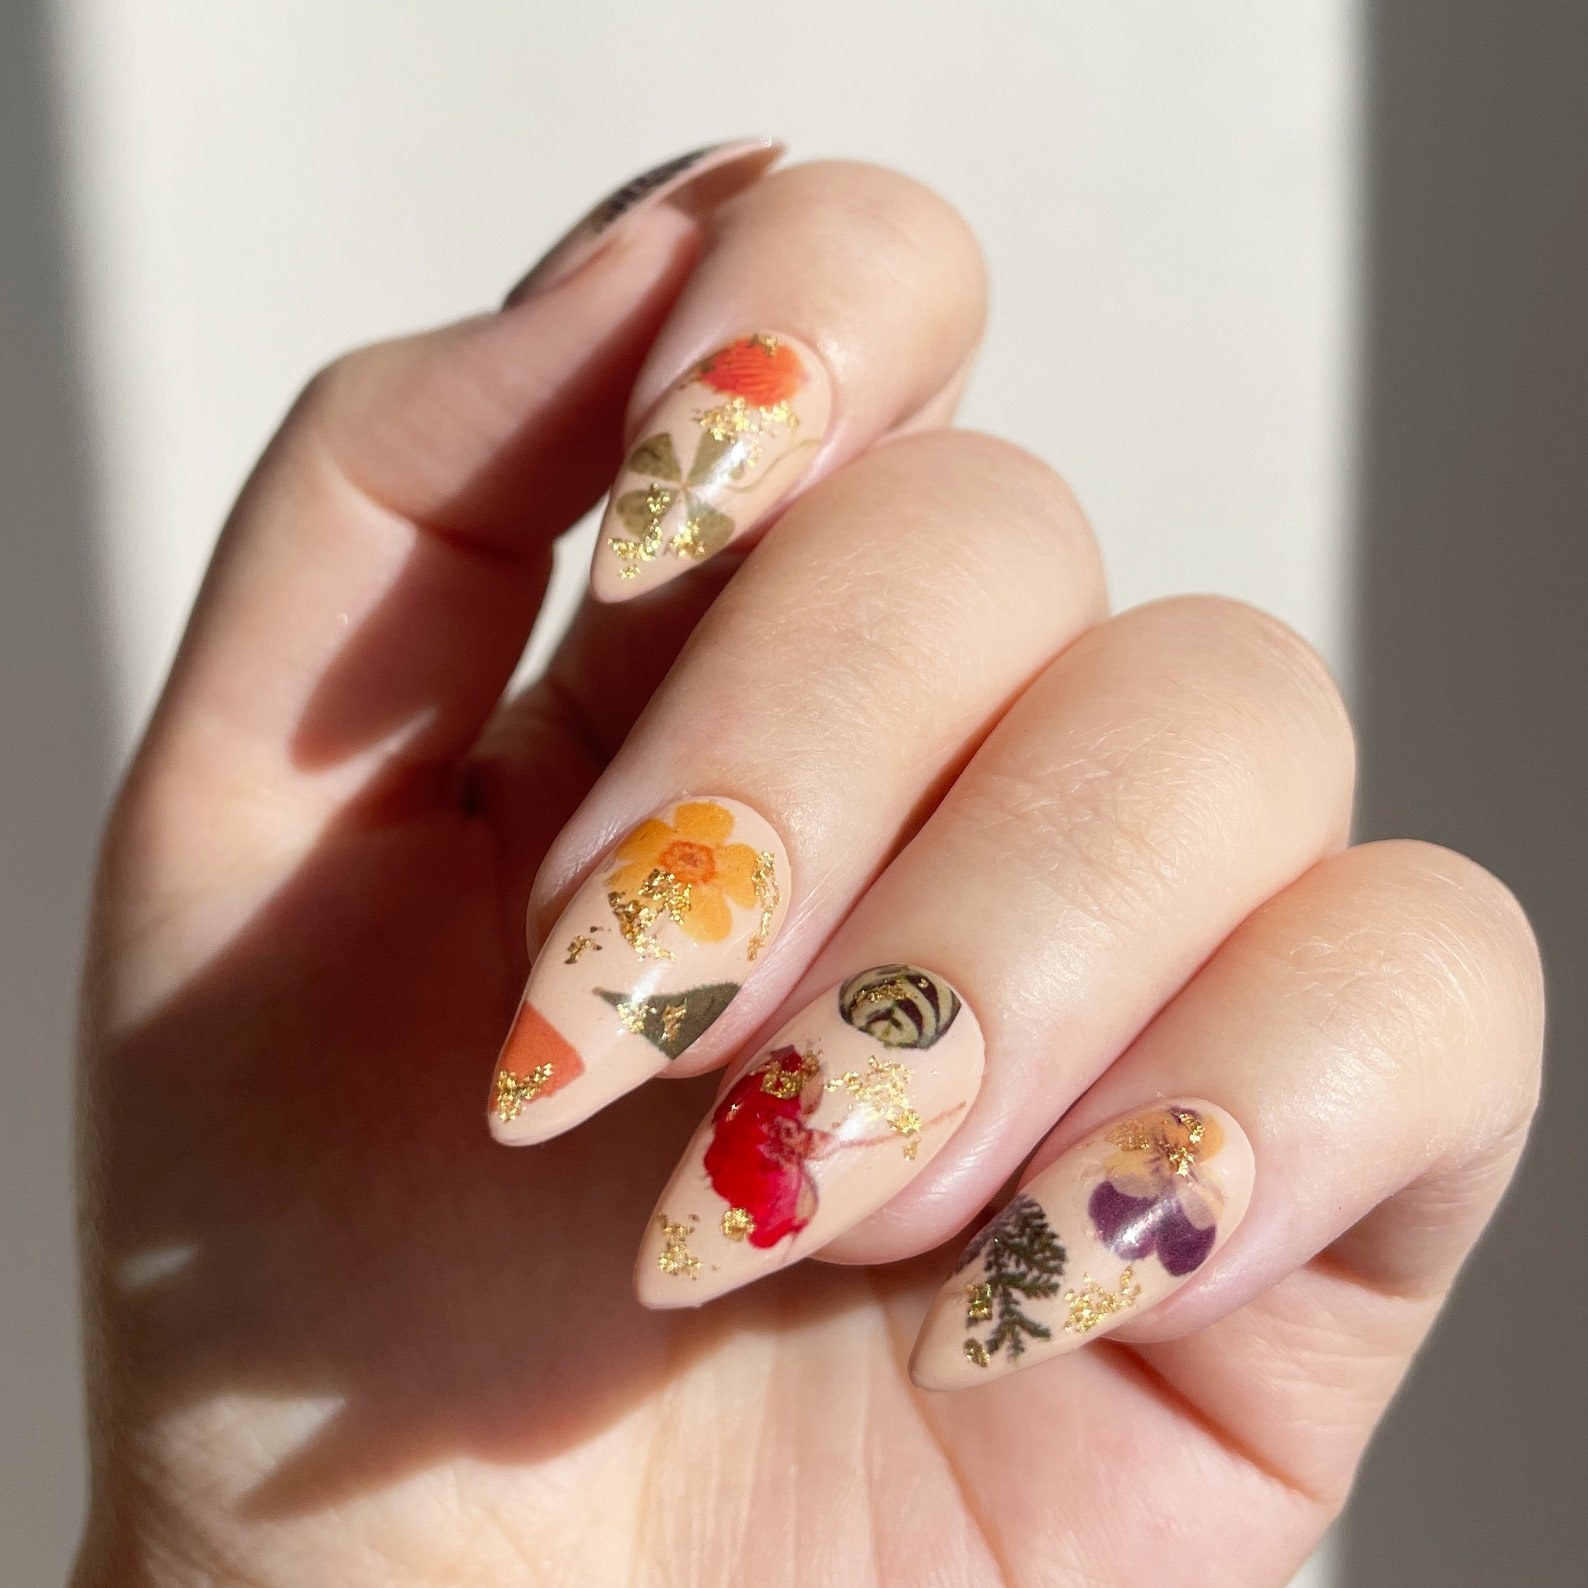 A hand with the decals on a beige nail polish background